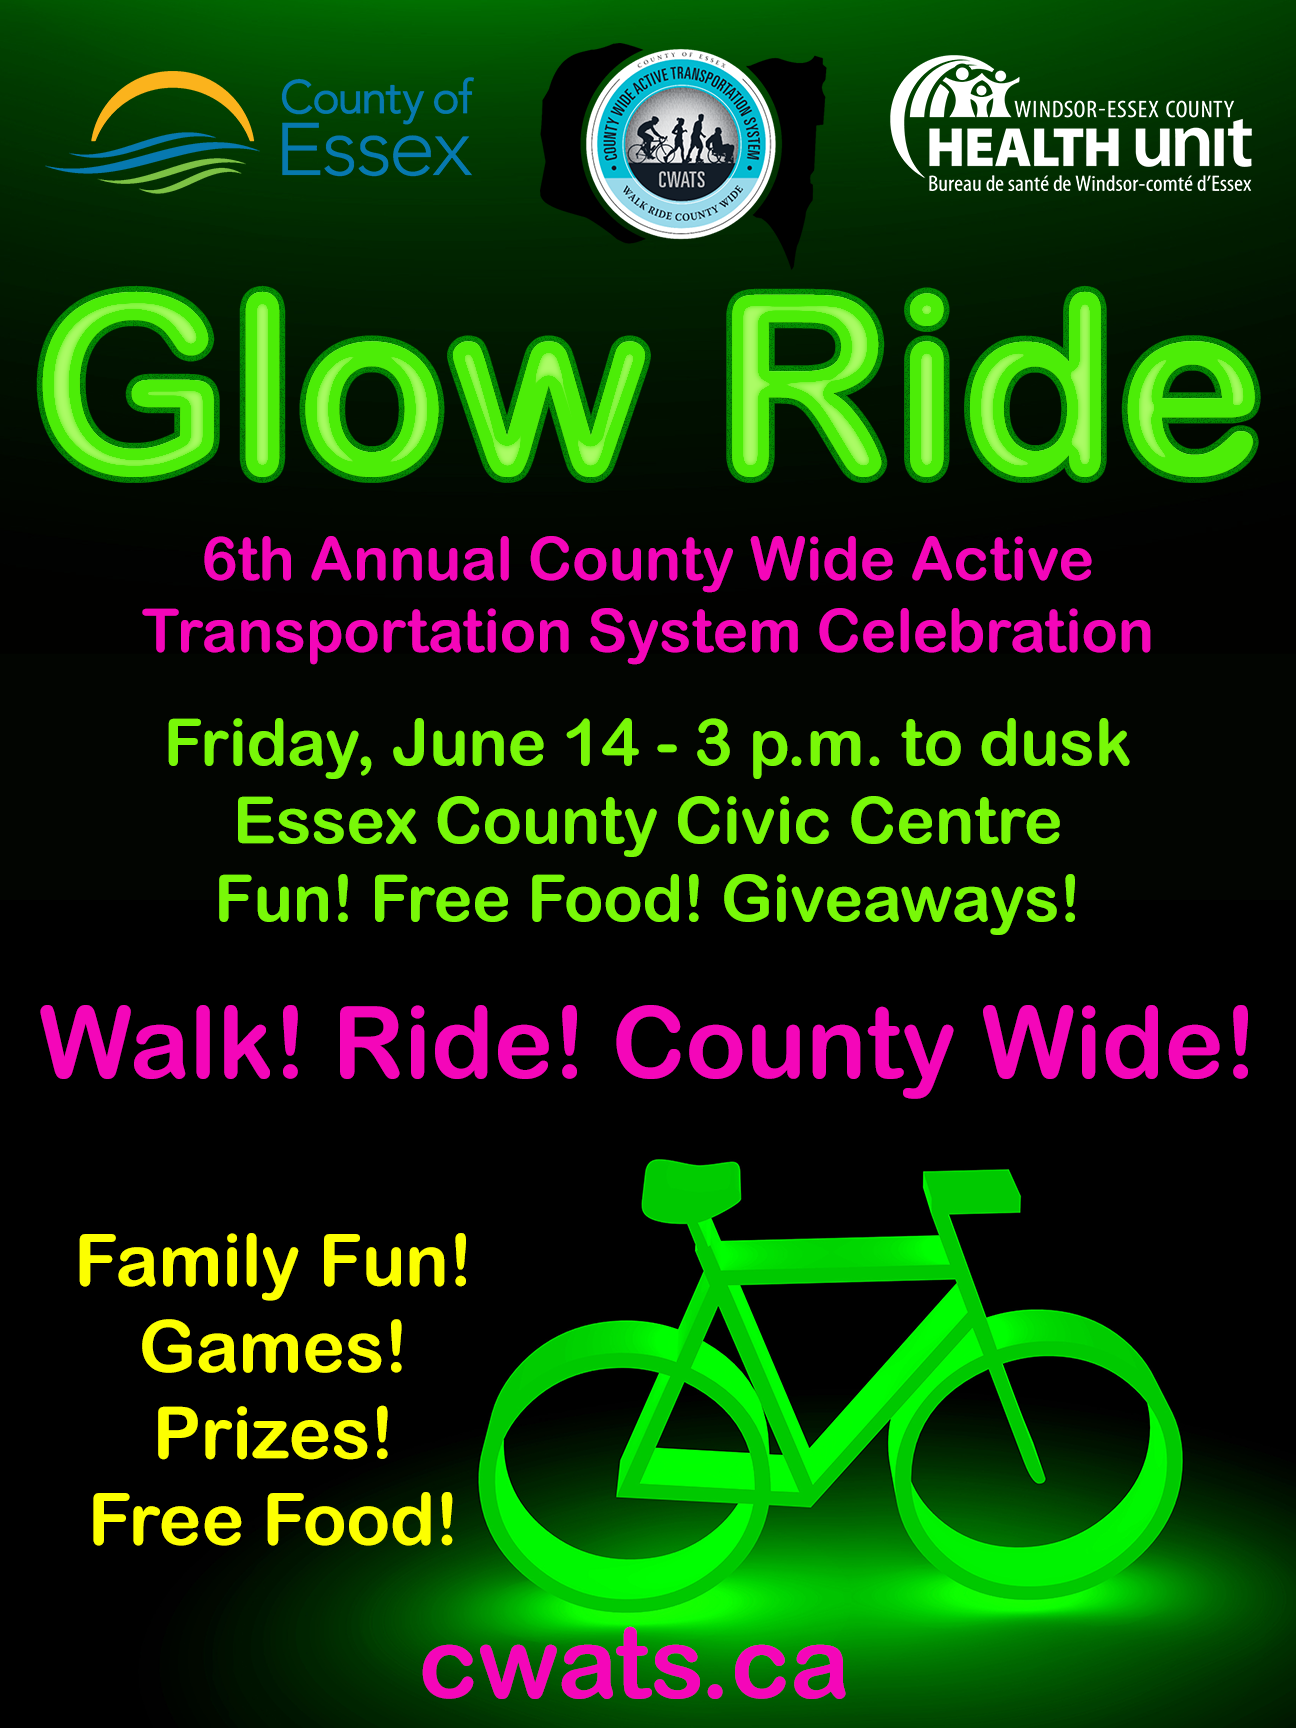 A poster with neon lettering and a green neon bike promoting the Glow Ride on June 14th.